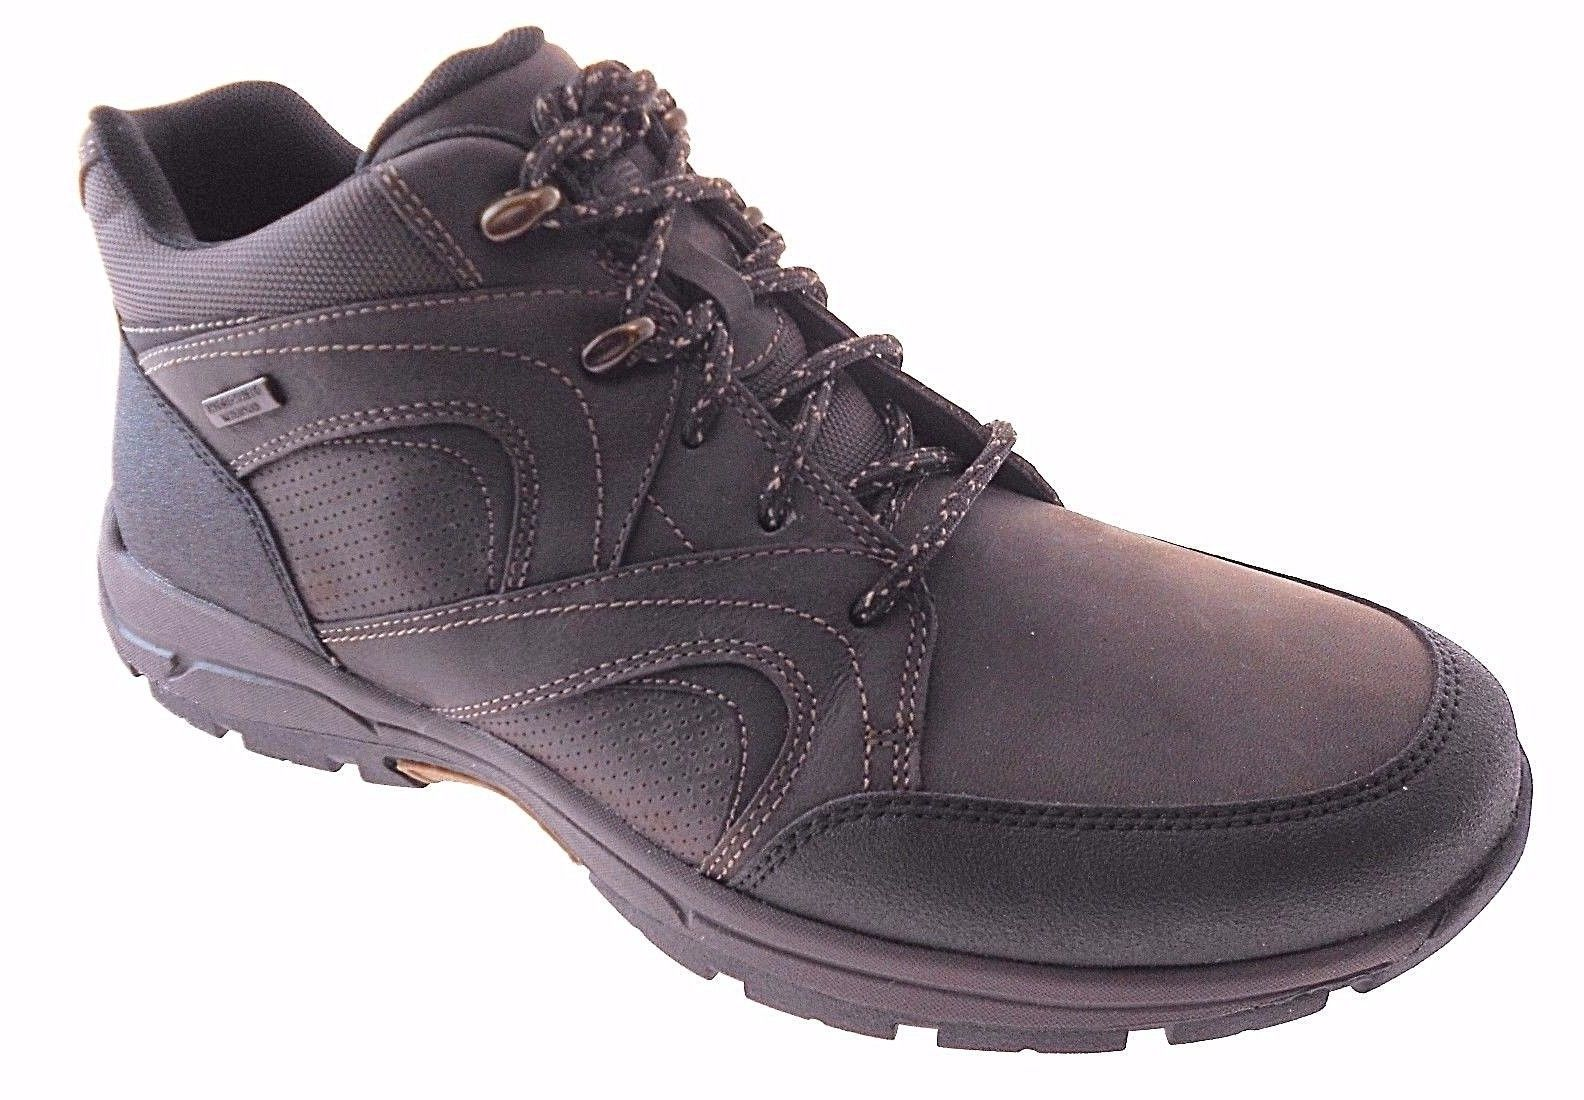 ROCKPORT ROAD&TRAIL WP MDGD MEN'S BROWN WATERPROOF BOOTS SZ 11, H79511 -  $103.99